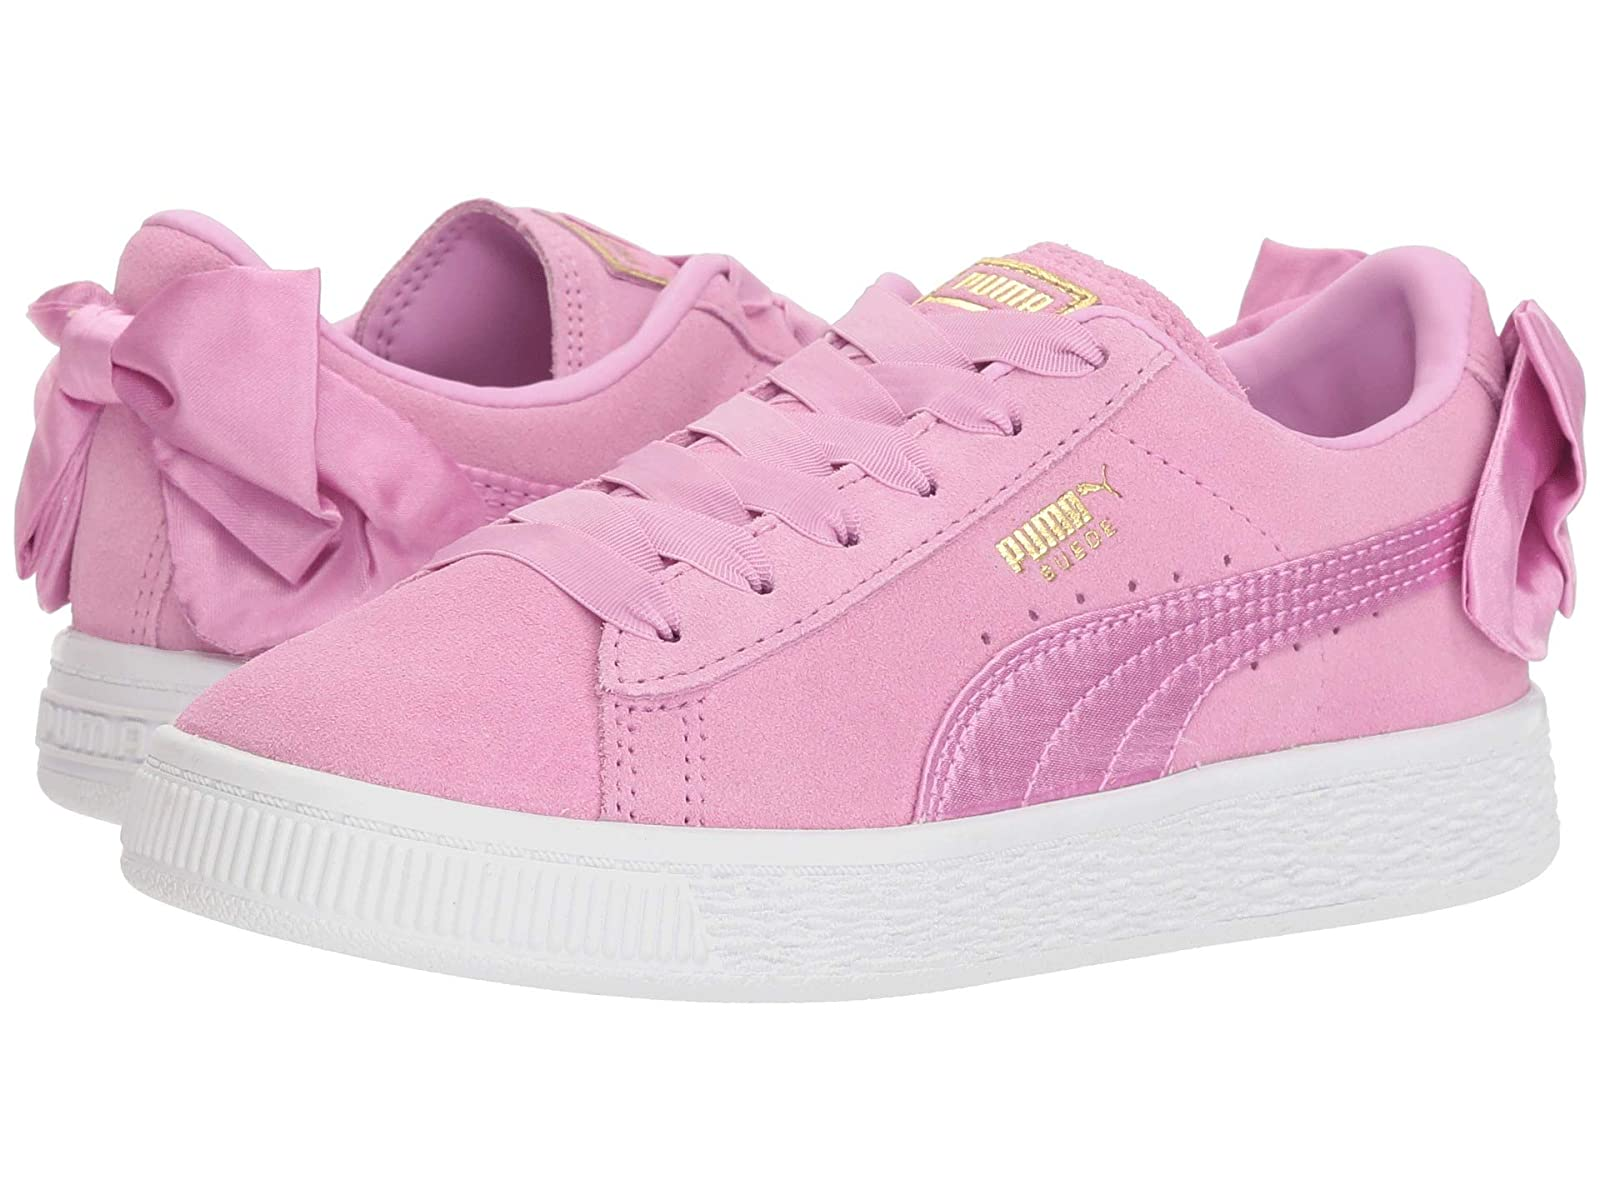 Puma Kids Suede Bow AC (Little Kid/Big Kid)Atmospheric grades have affordable shoes